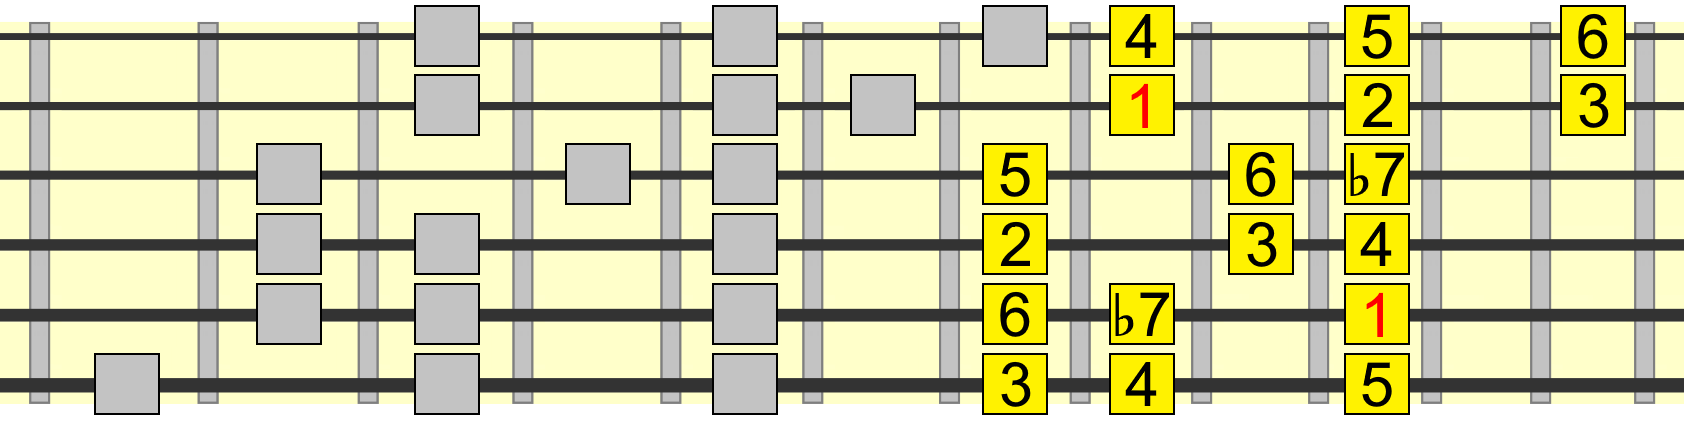 extended 1 chord mixolydian blues pattern